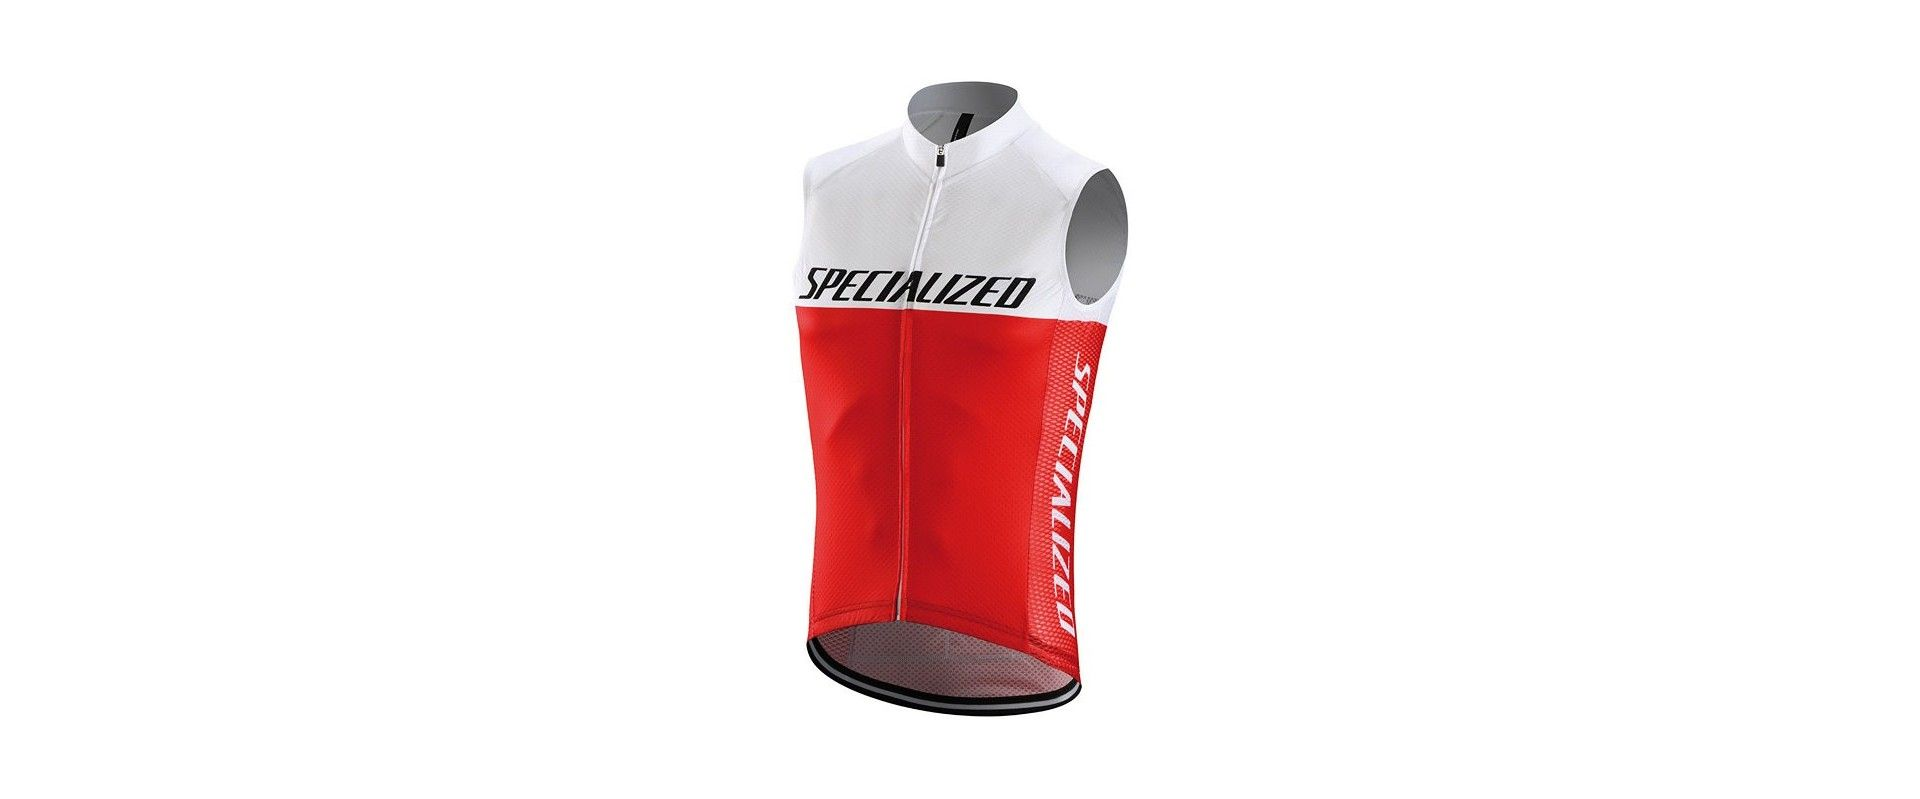 ♥ Buy Short Sleeve Jerseys ♥ - Cycling Jersey - in IBKBike Specialized Concept Store España